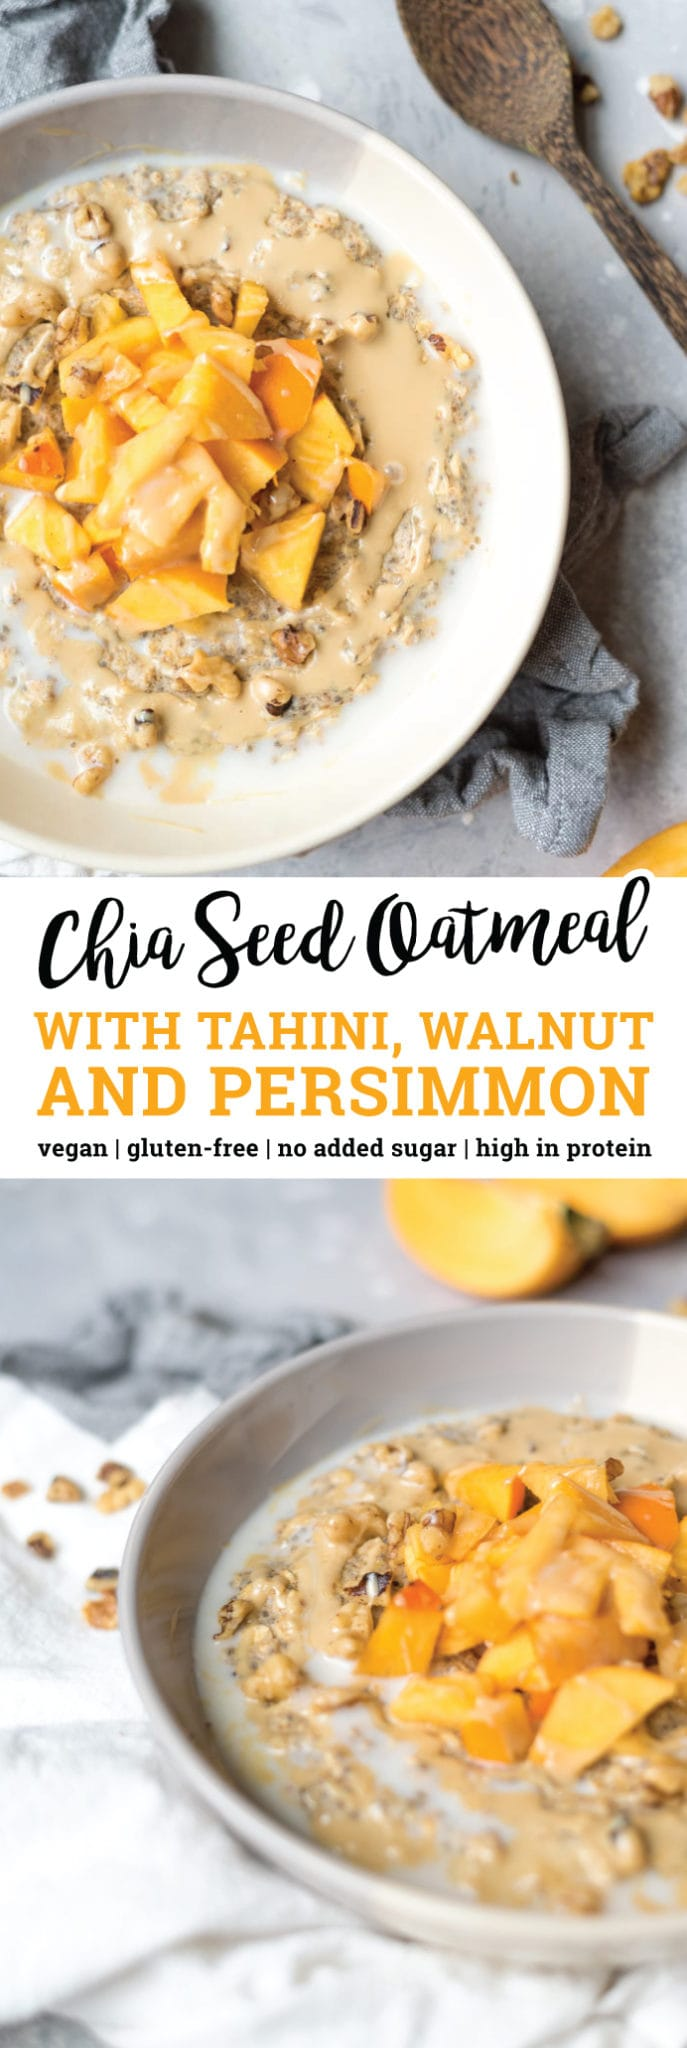 This delicious, vegan, chia seed oatmeal with tahini and persimmon is high in fibre, protein and omega-3 essential fatty acids. It's also a good source of iron and calcium. Cook it stovetop in minutes for a warm bowl of healthy oatmeal or make it as chia seed overnight oats if you have a busy morning ahead.